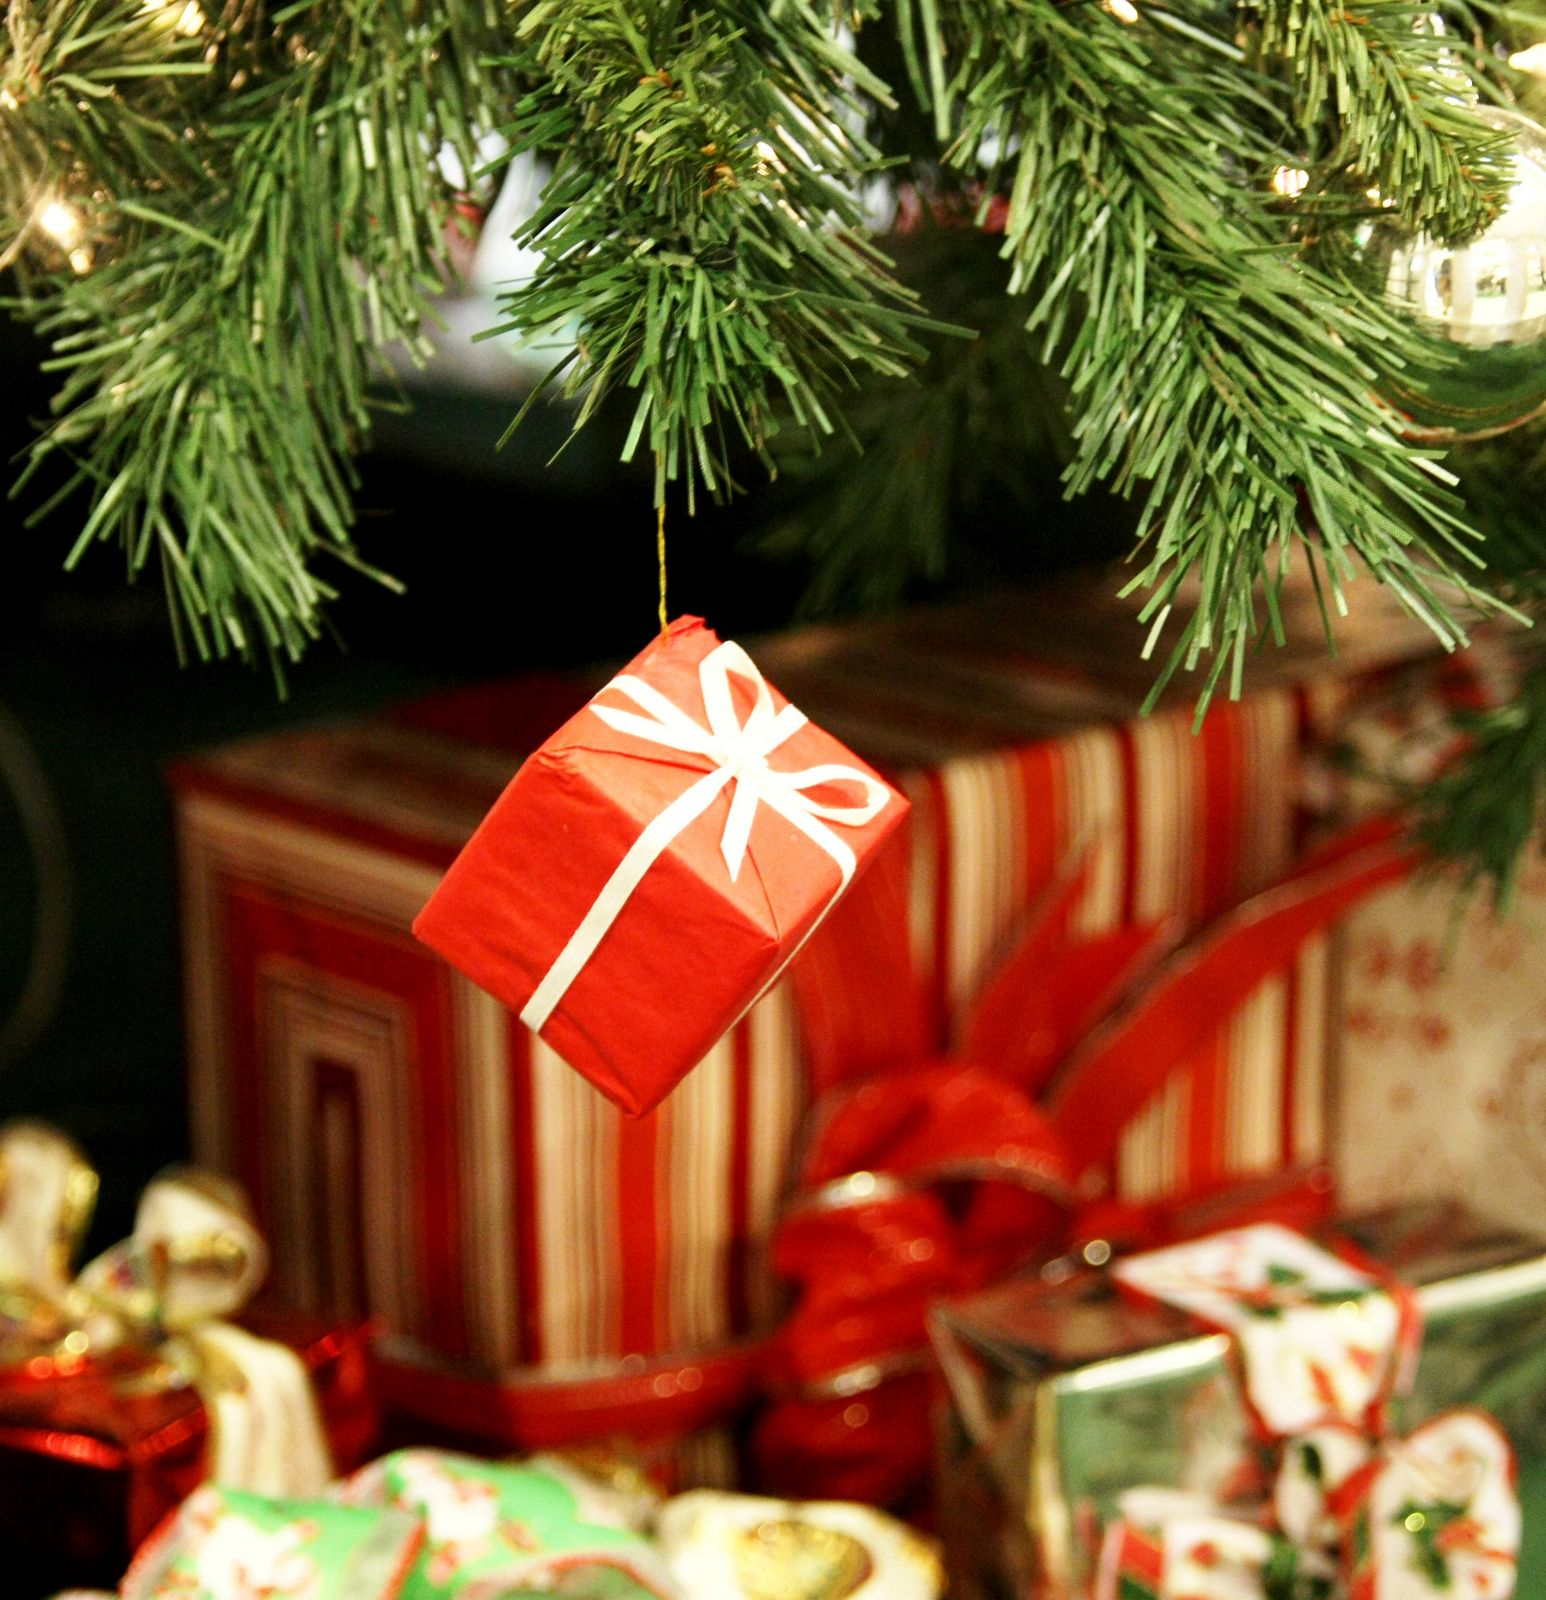 thanksgiving - How Many Gifts For Christmas